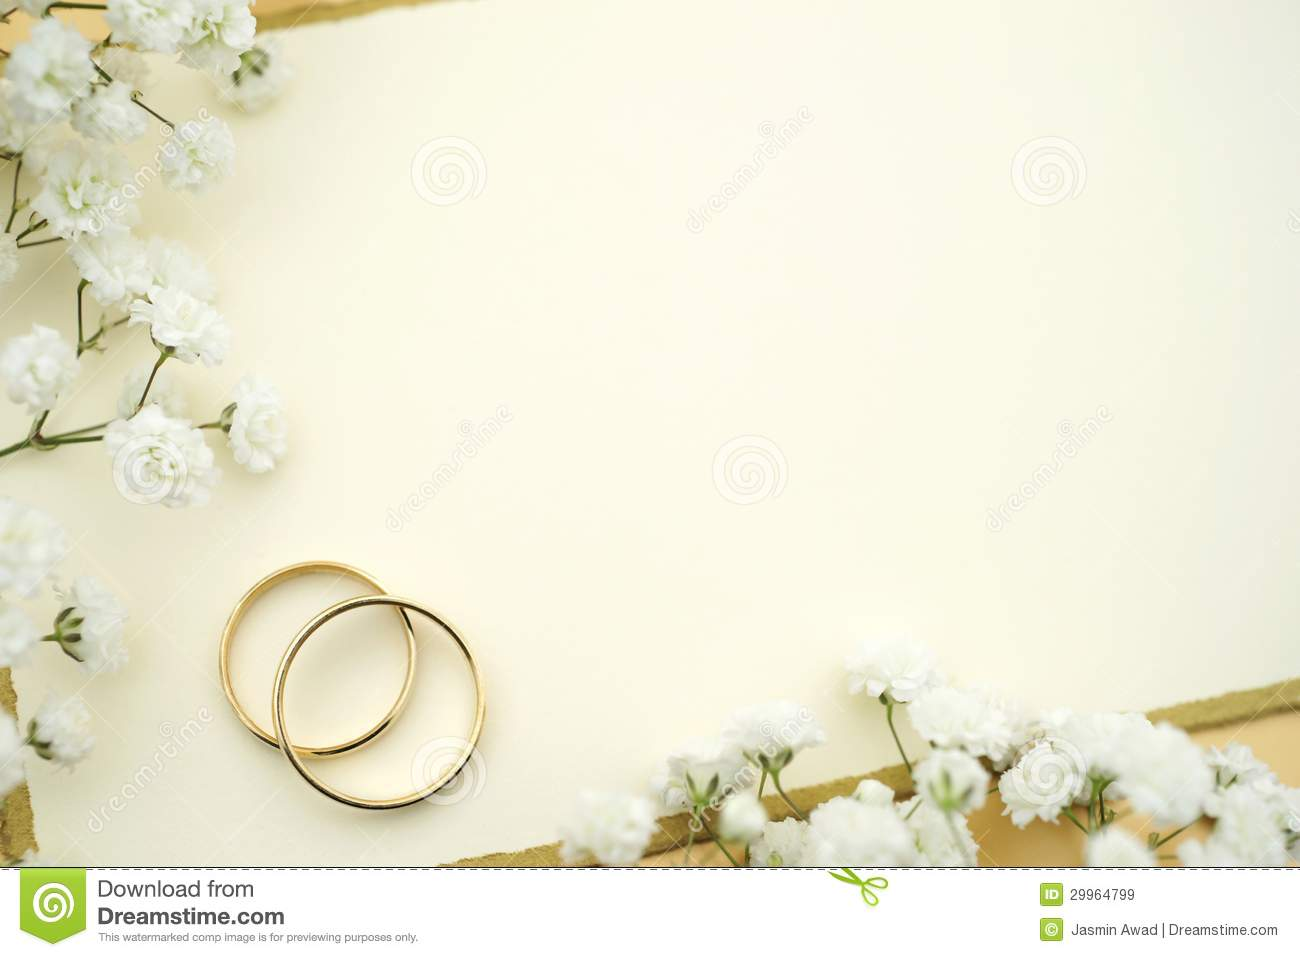 Ring Ceremony Hd Wallpaper Wedding Invite Stock Image Image Of Jewelry Wedding